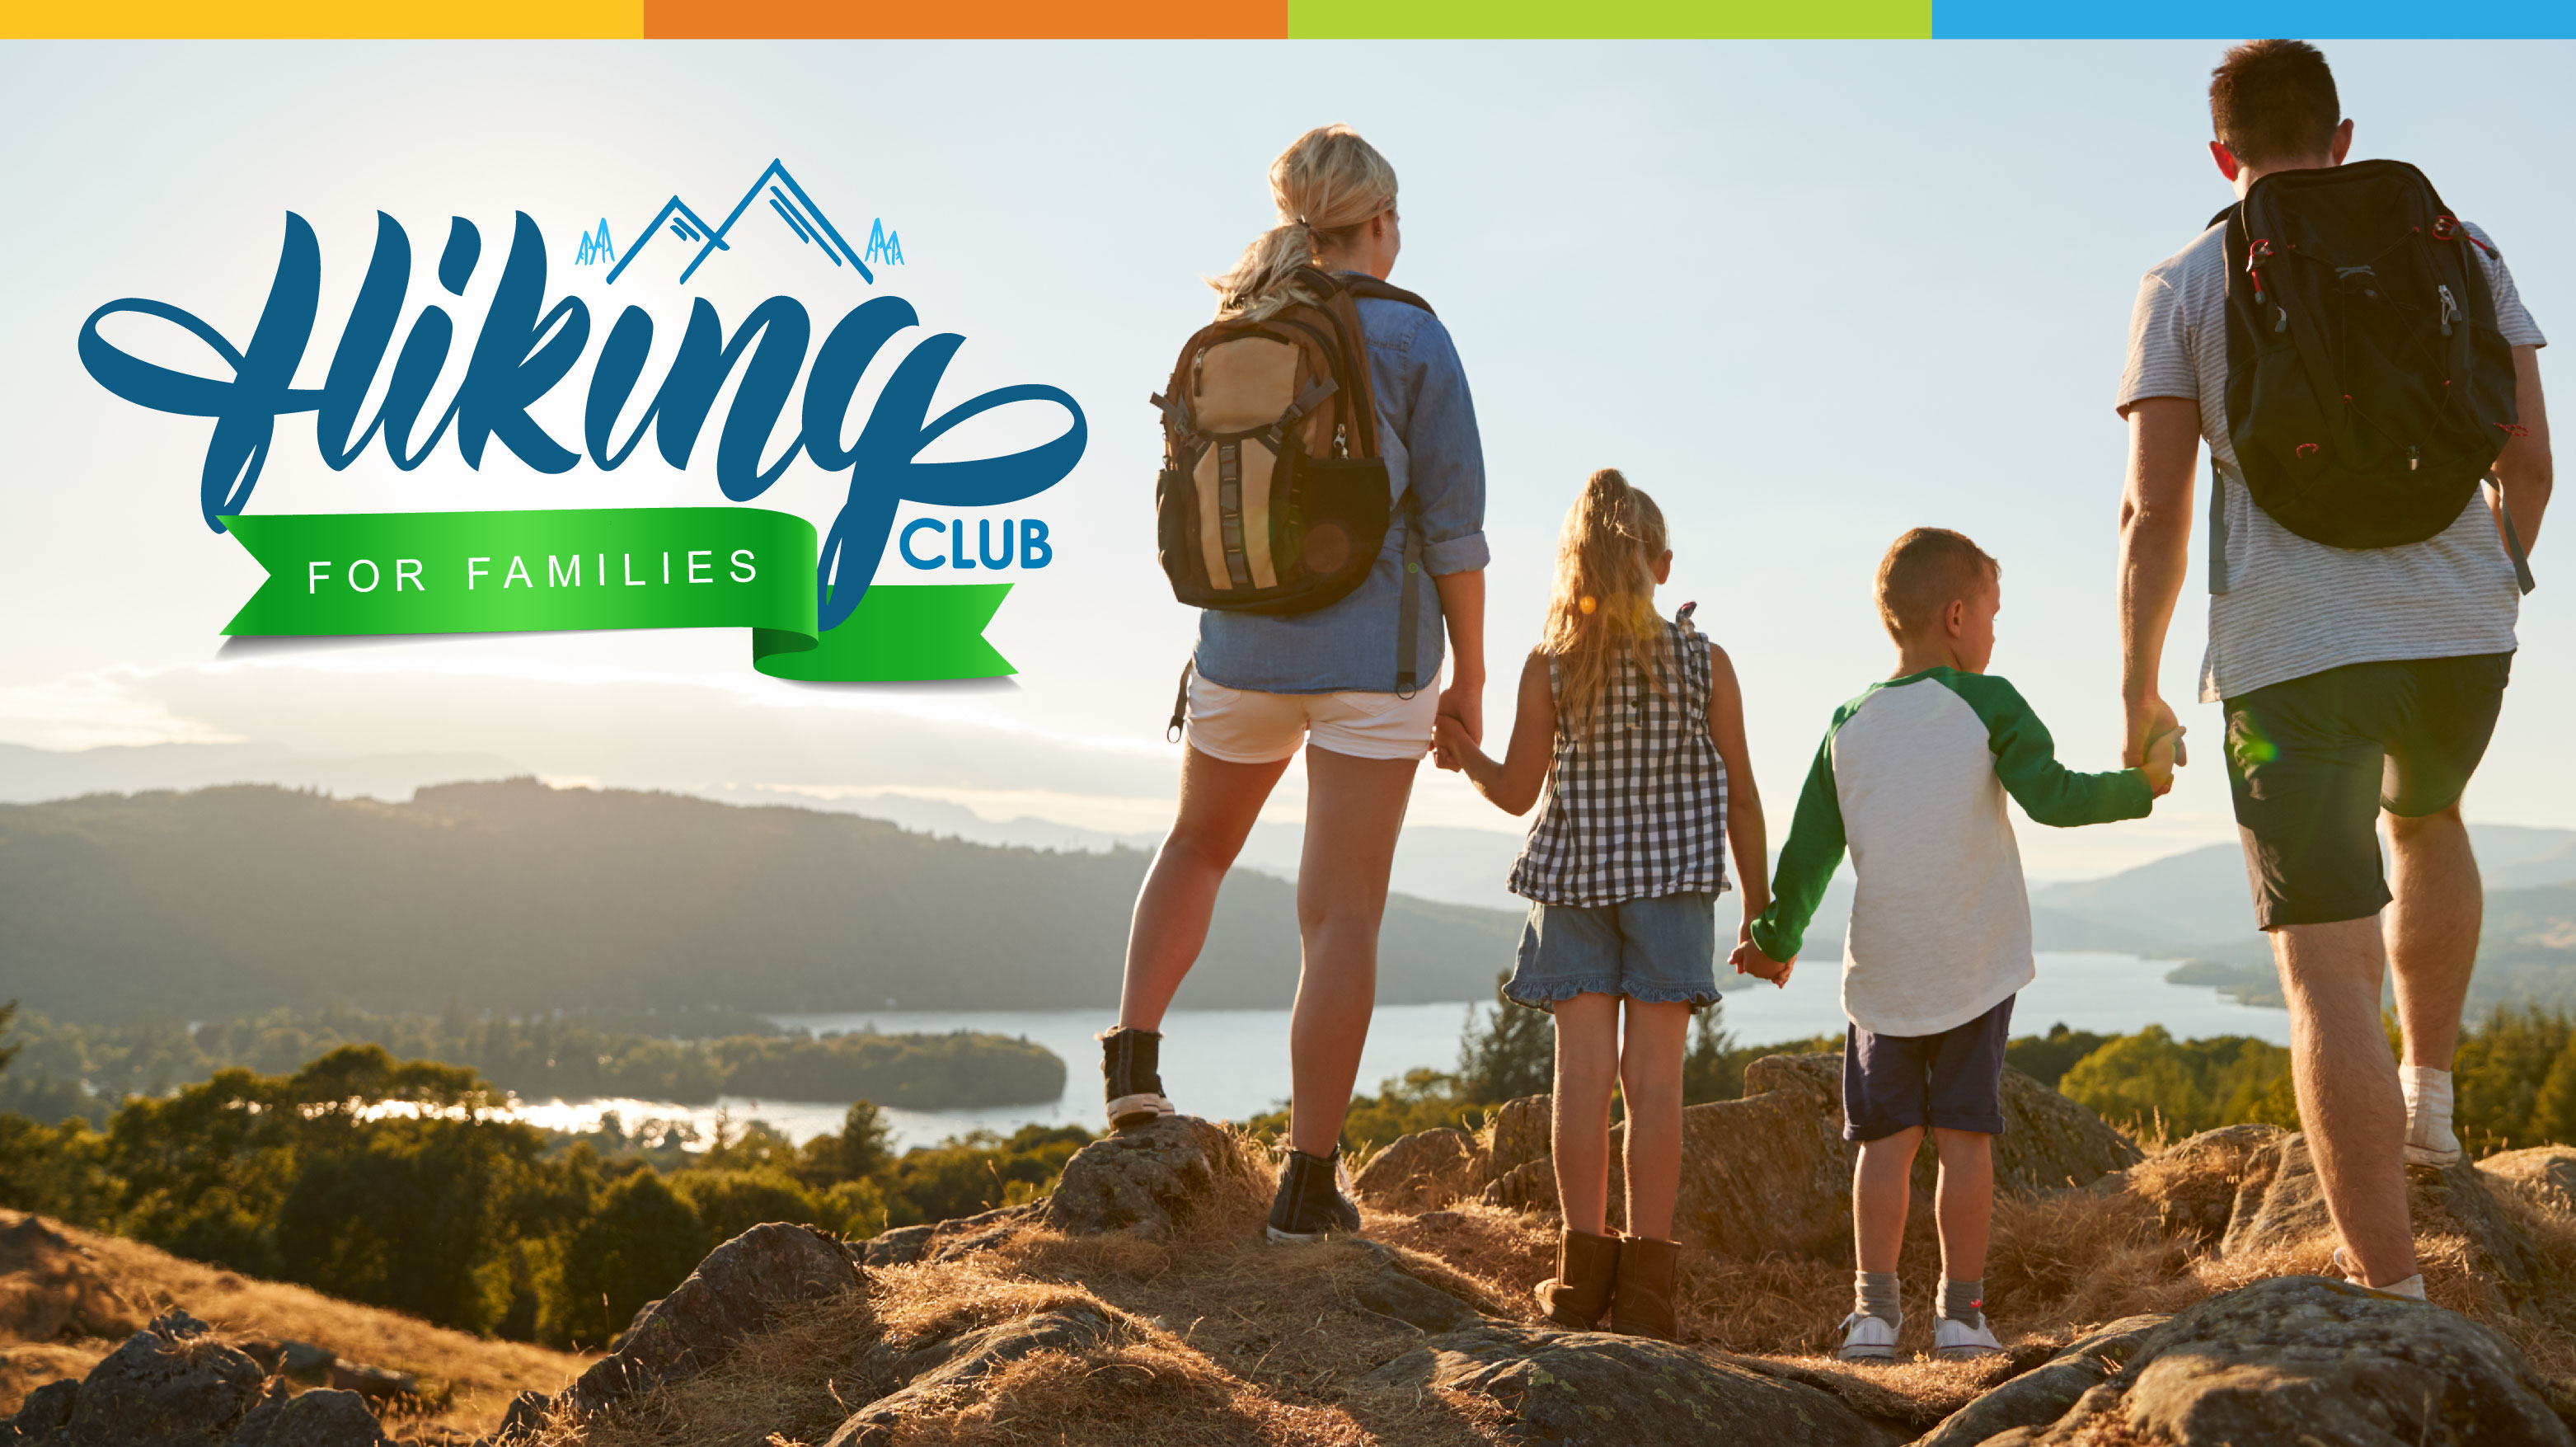 Hiking Club for Families